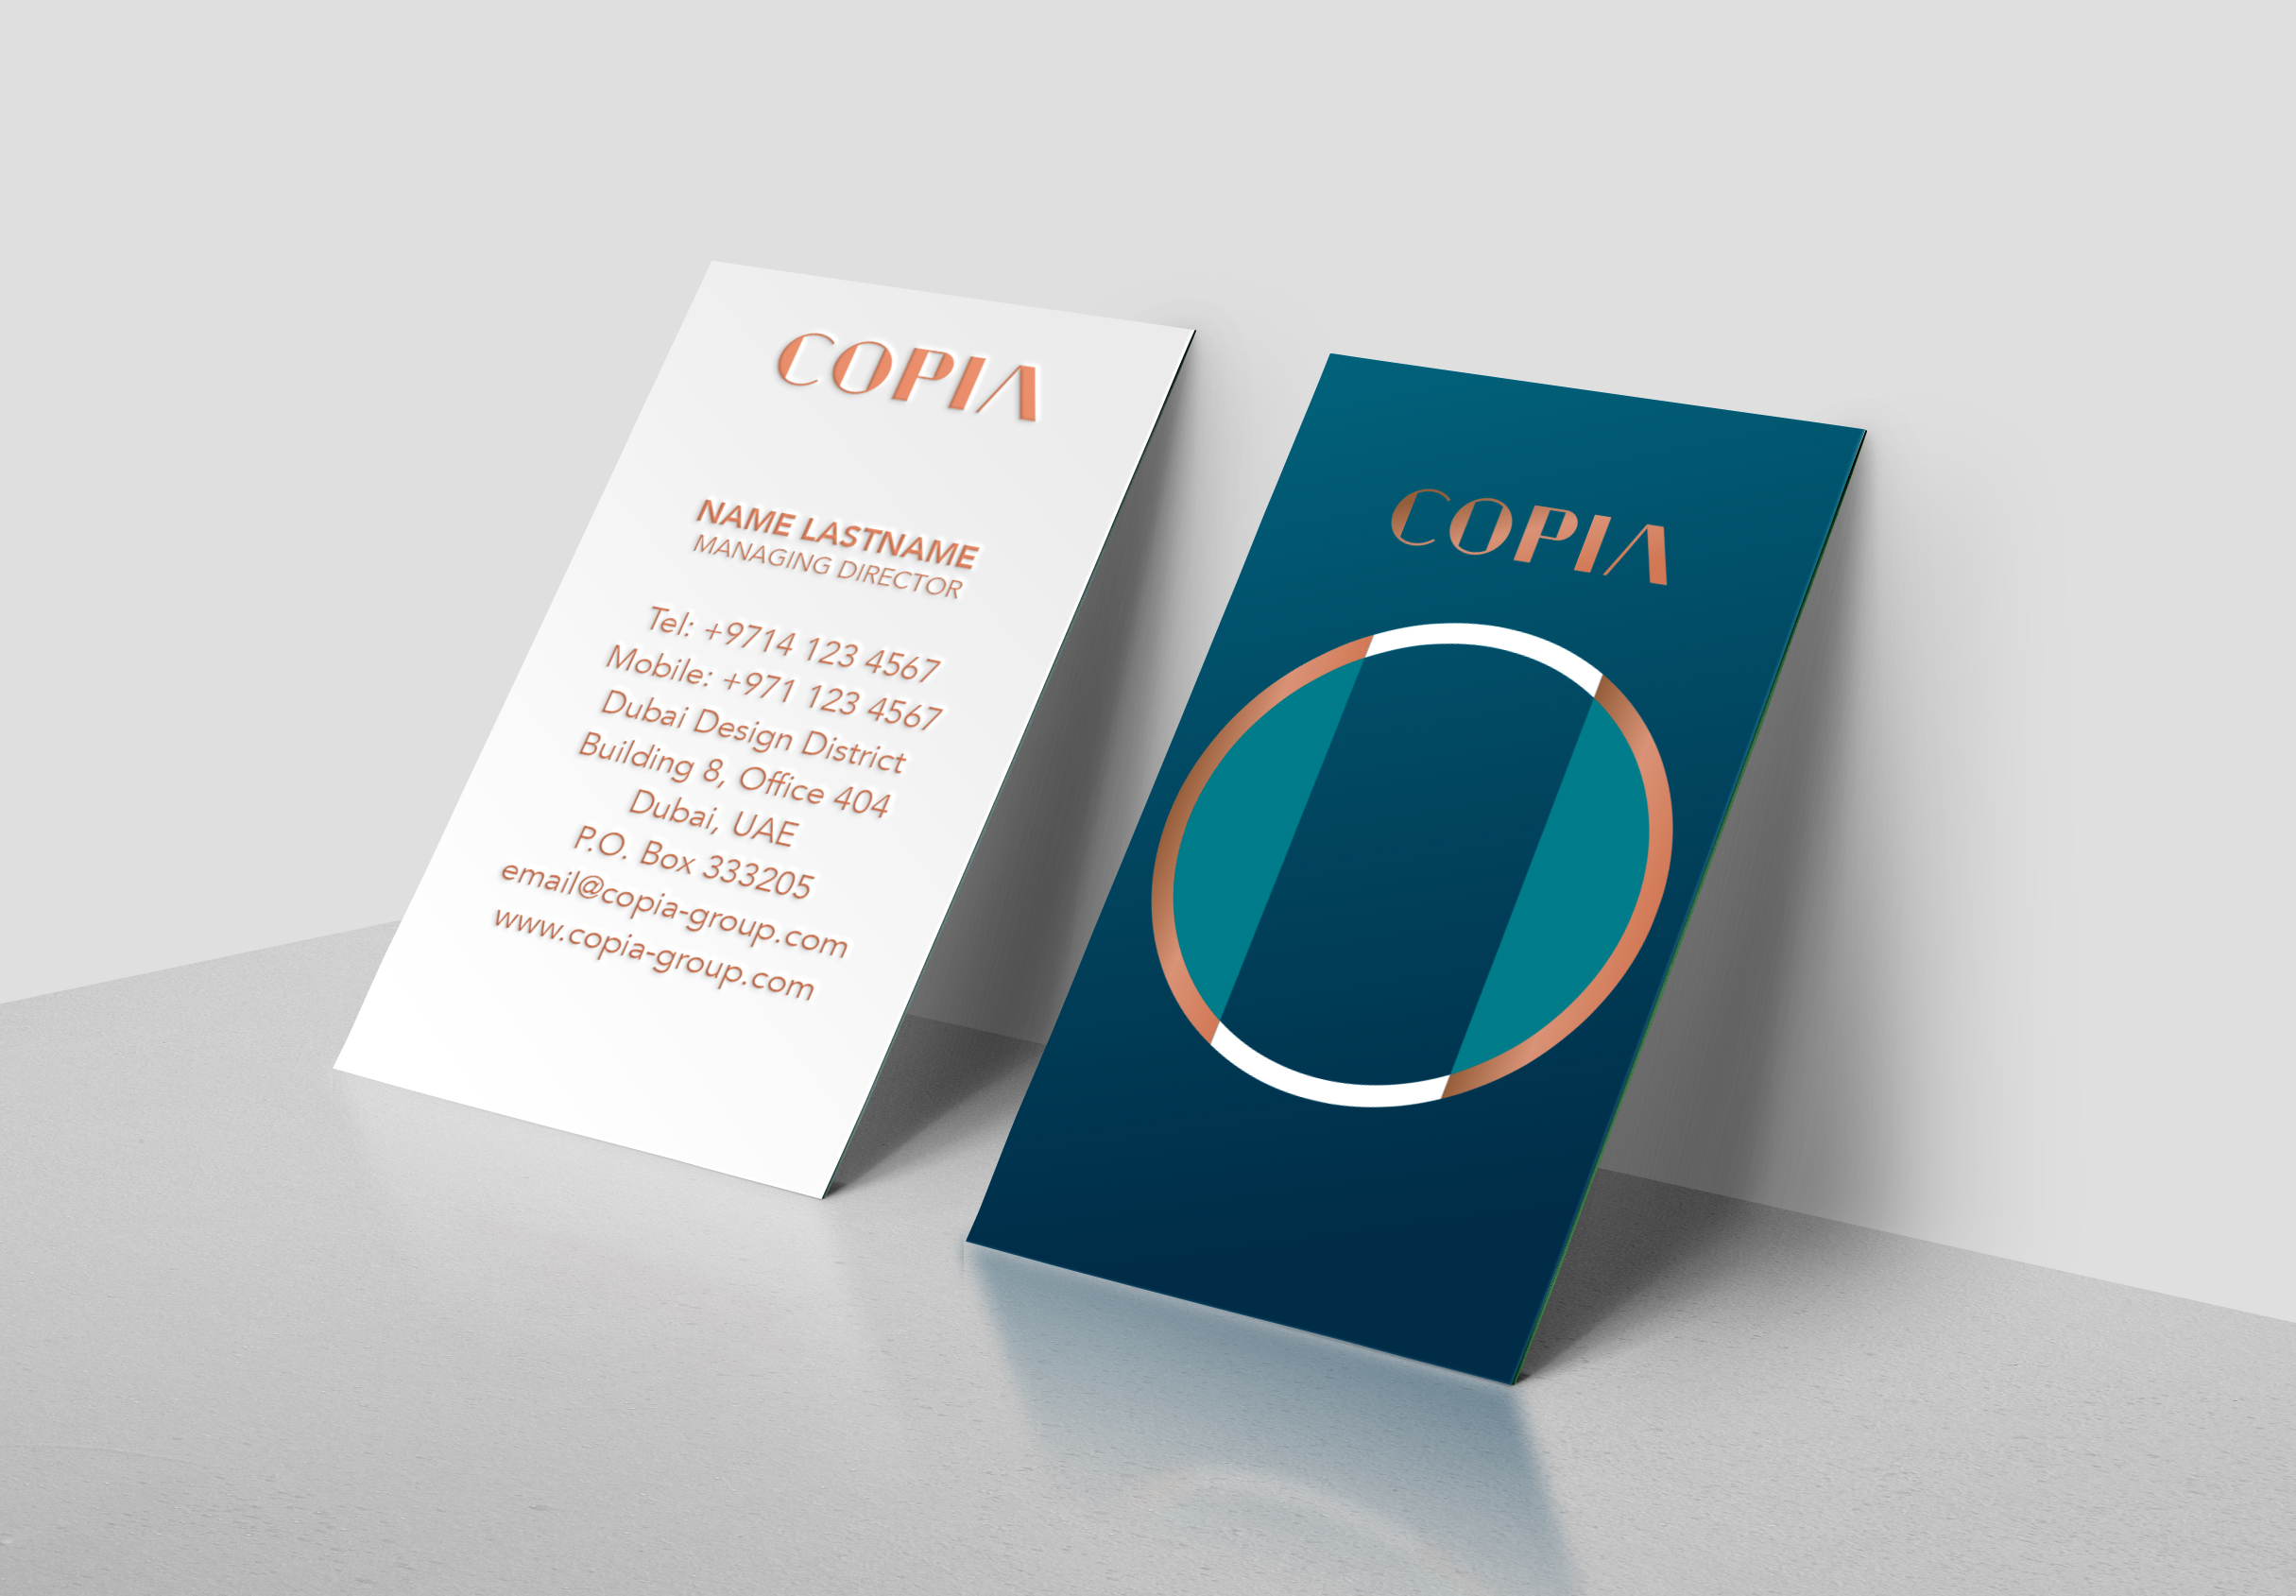 Kalian_Branding_Copia_Businesscards.jpg